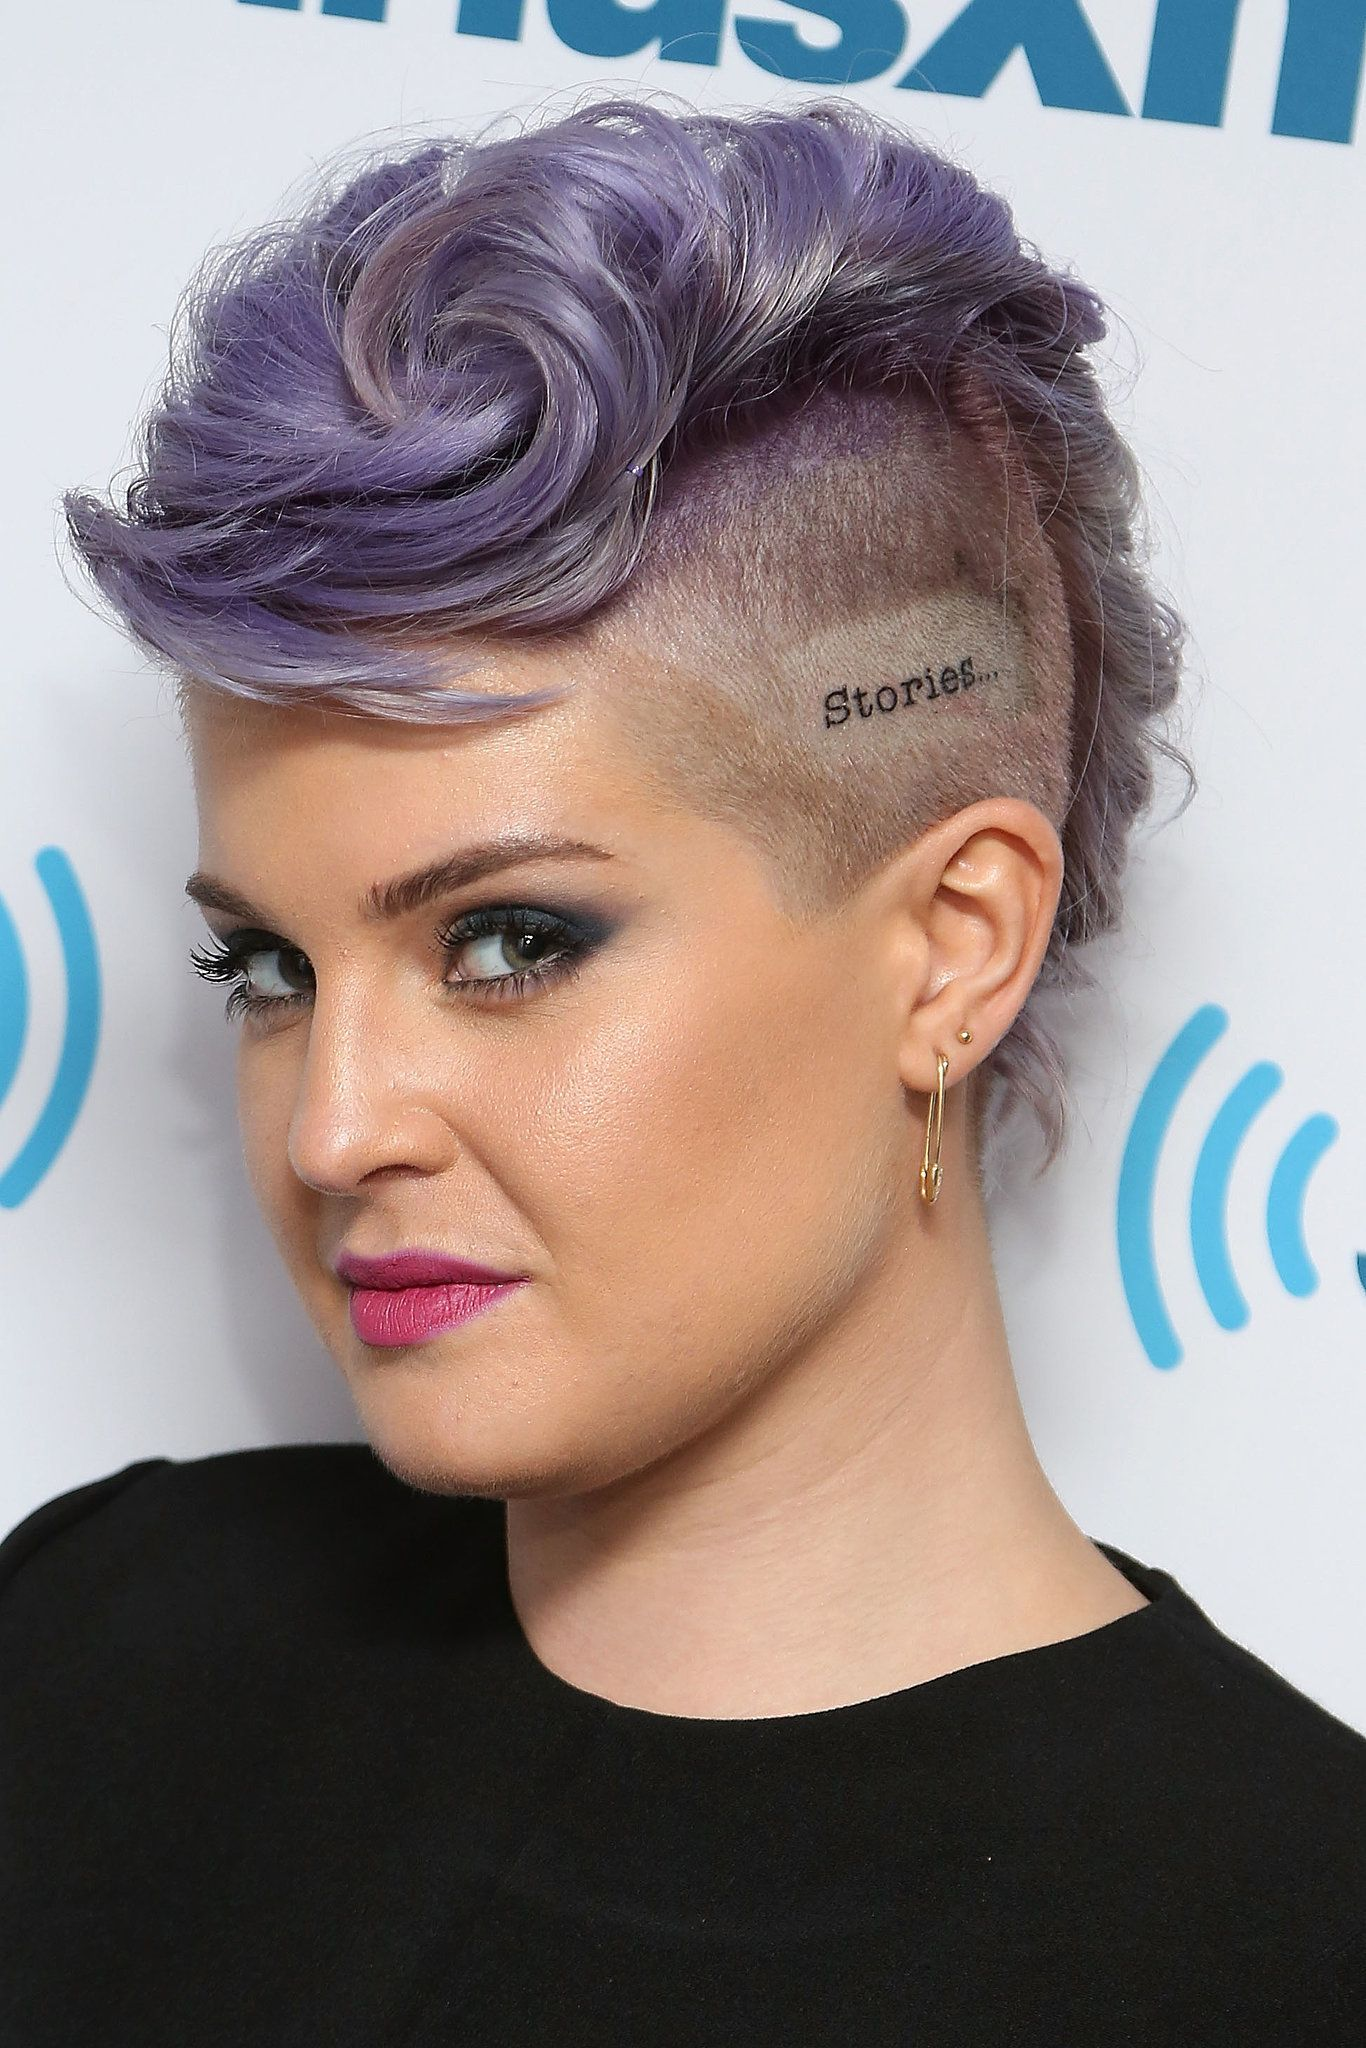 Kelly osbourne men hair cuts pinterest mohawk hairstyles